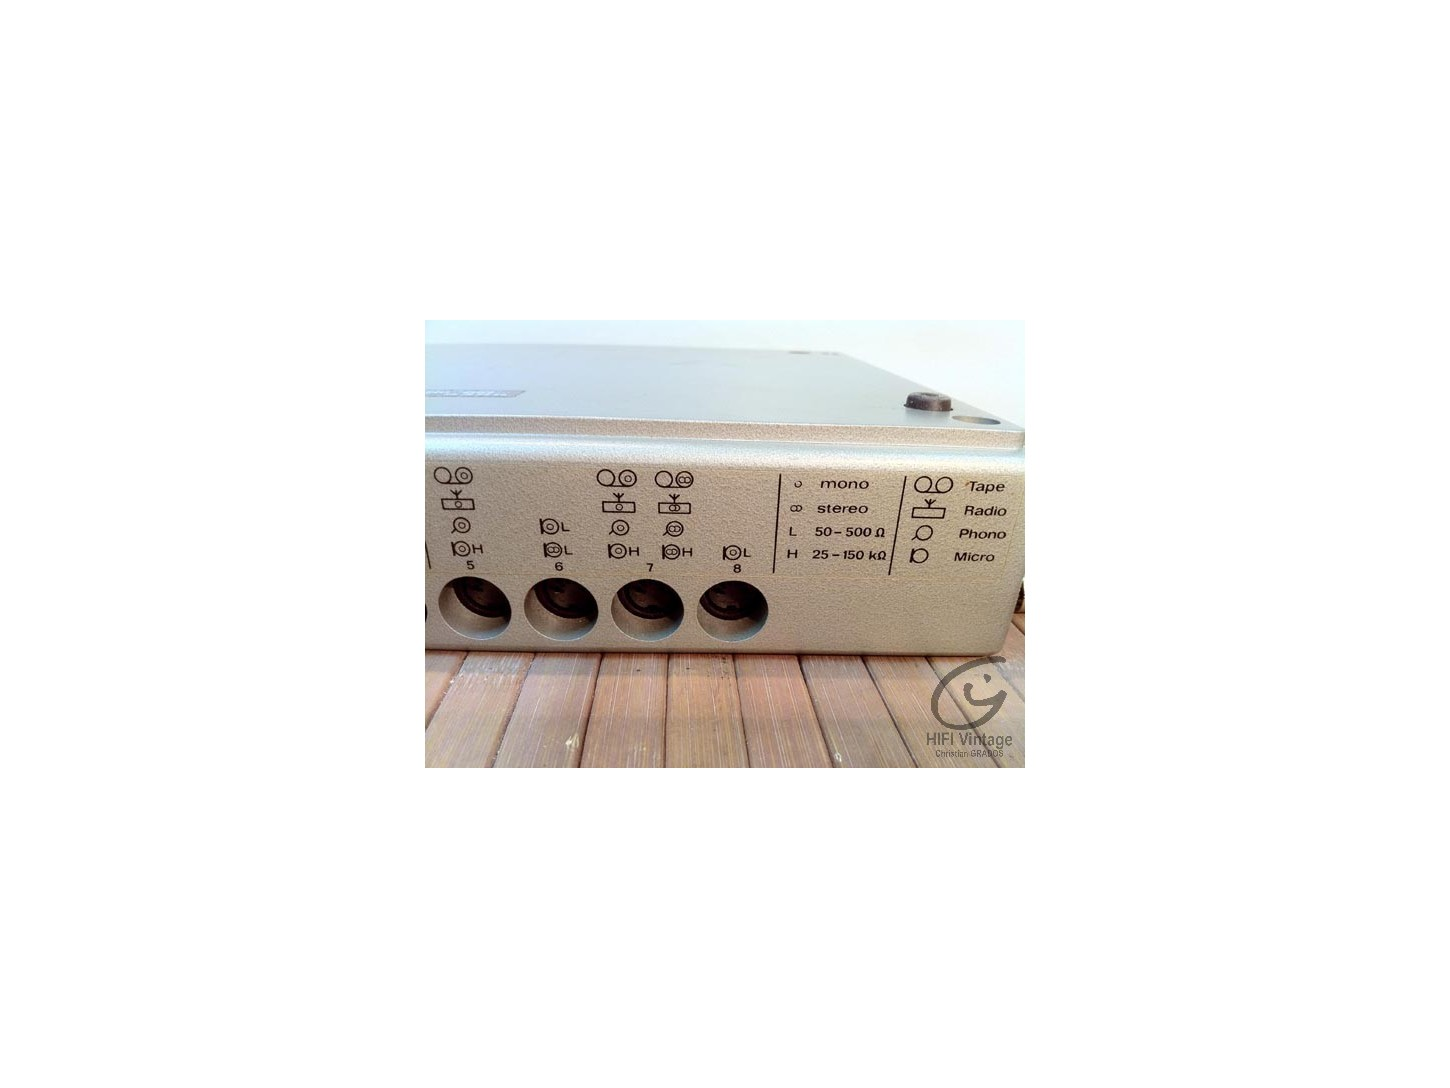 UHER MIX 500 A124